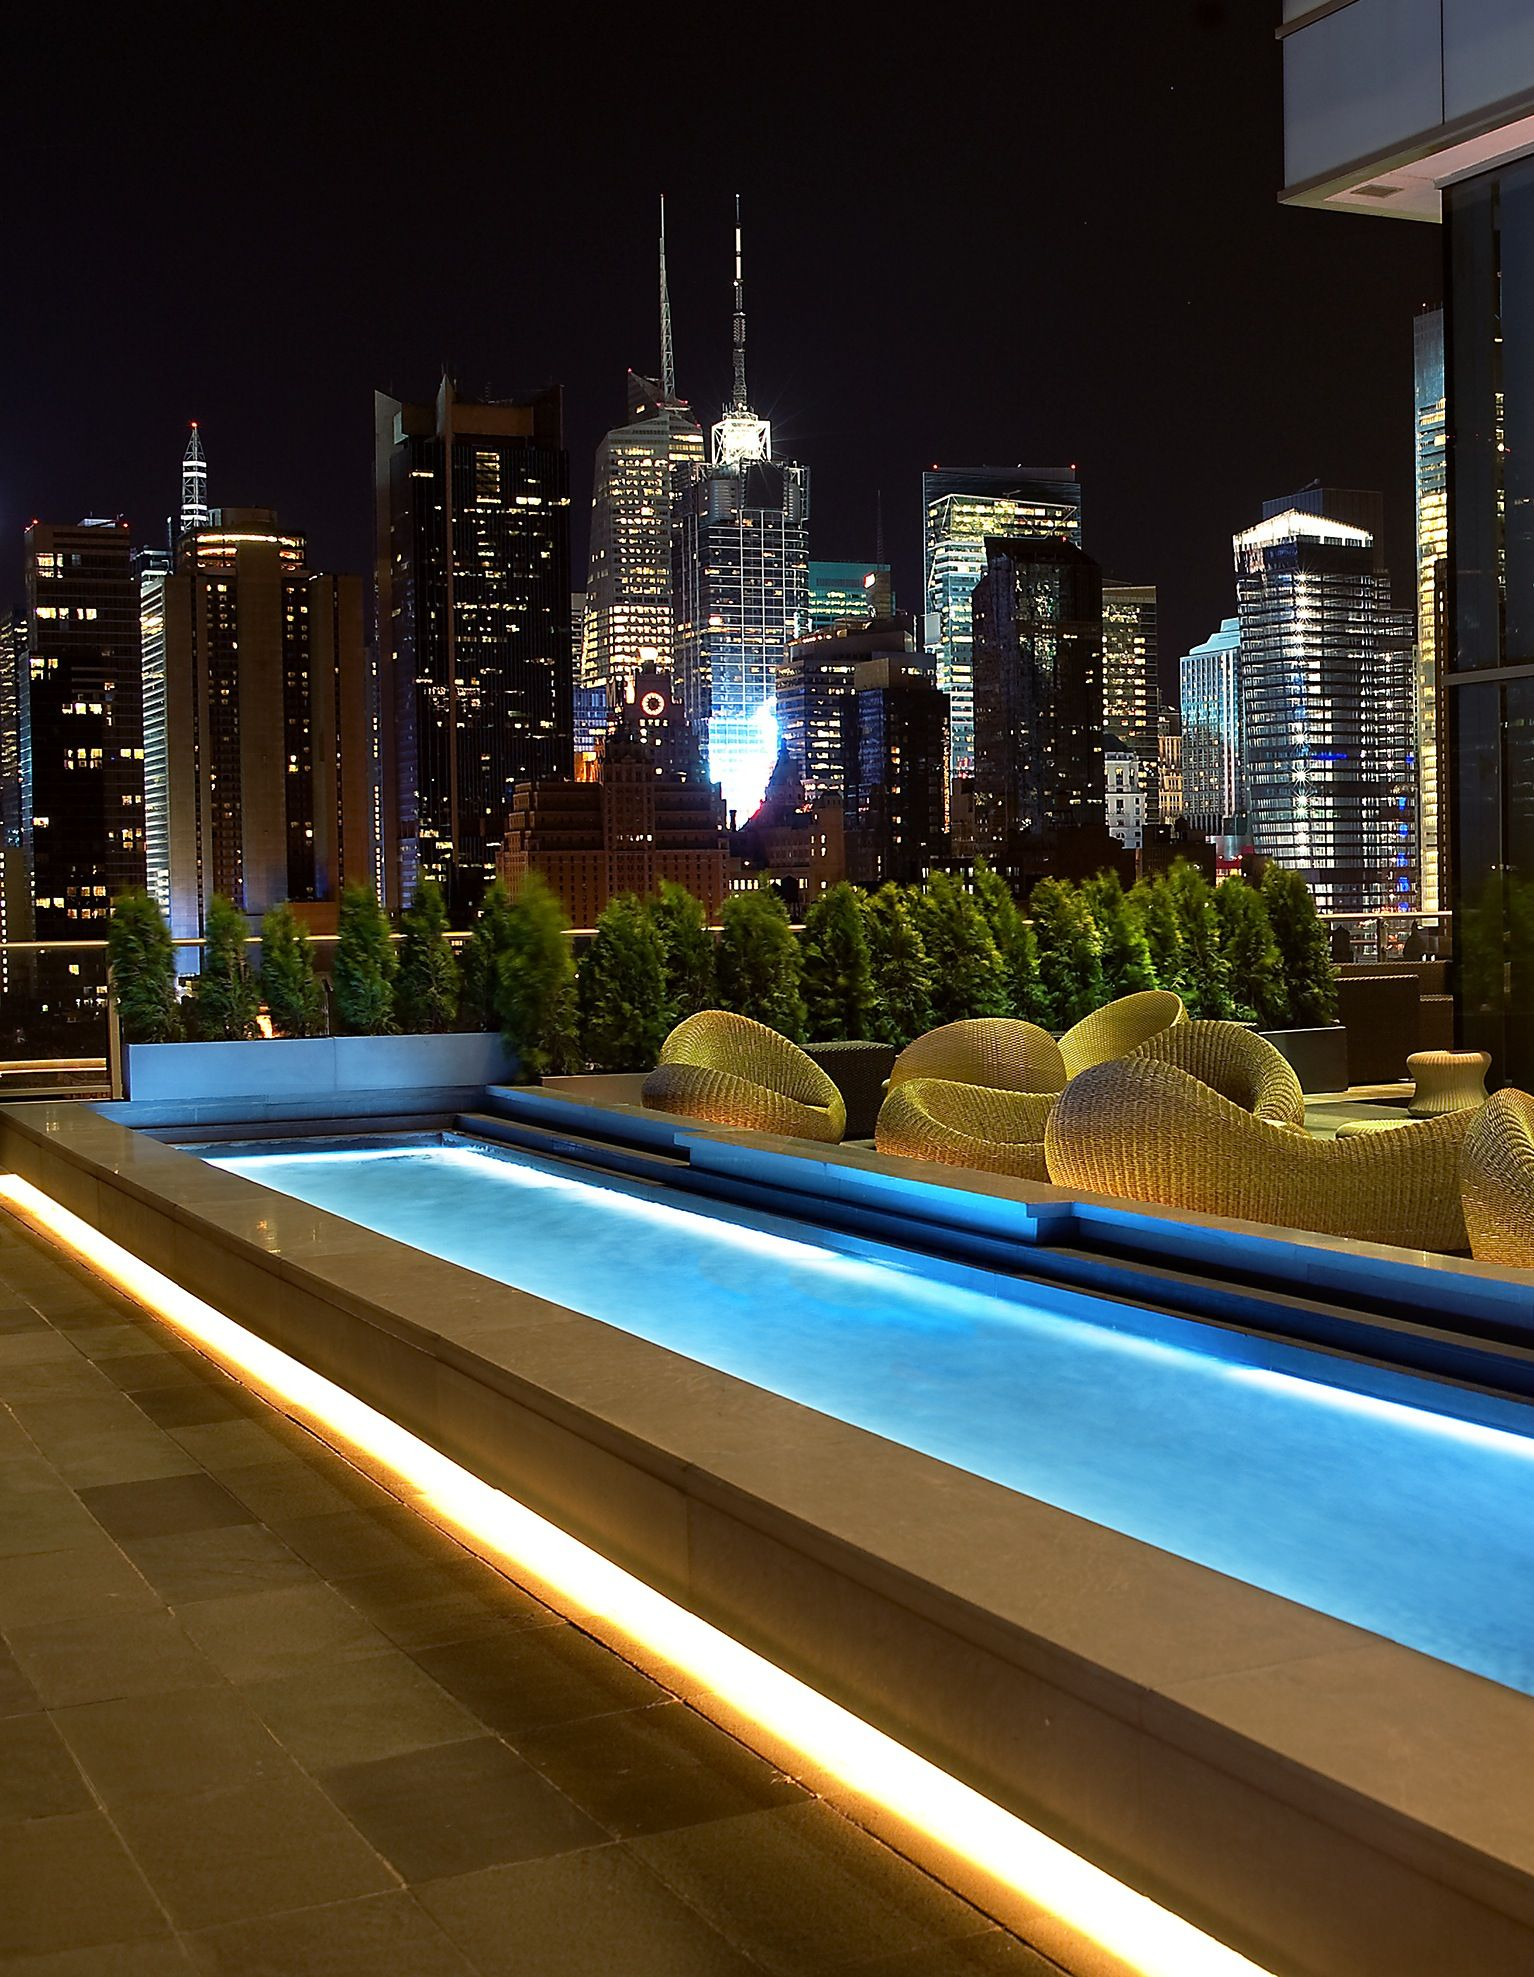 Nyc Penthouses For Parties If I Live In The City I Would Want An Apartment With A Rooftop To